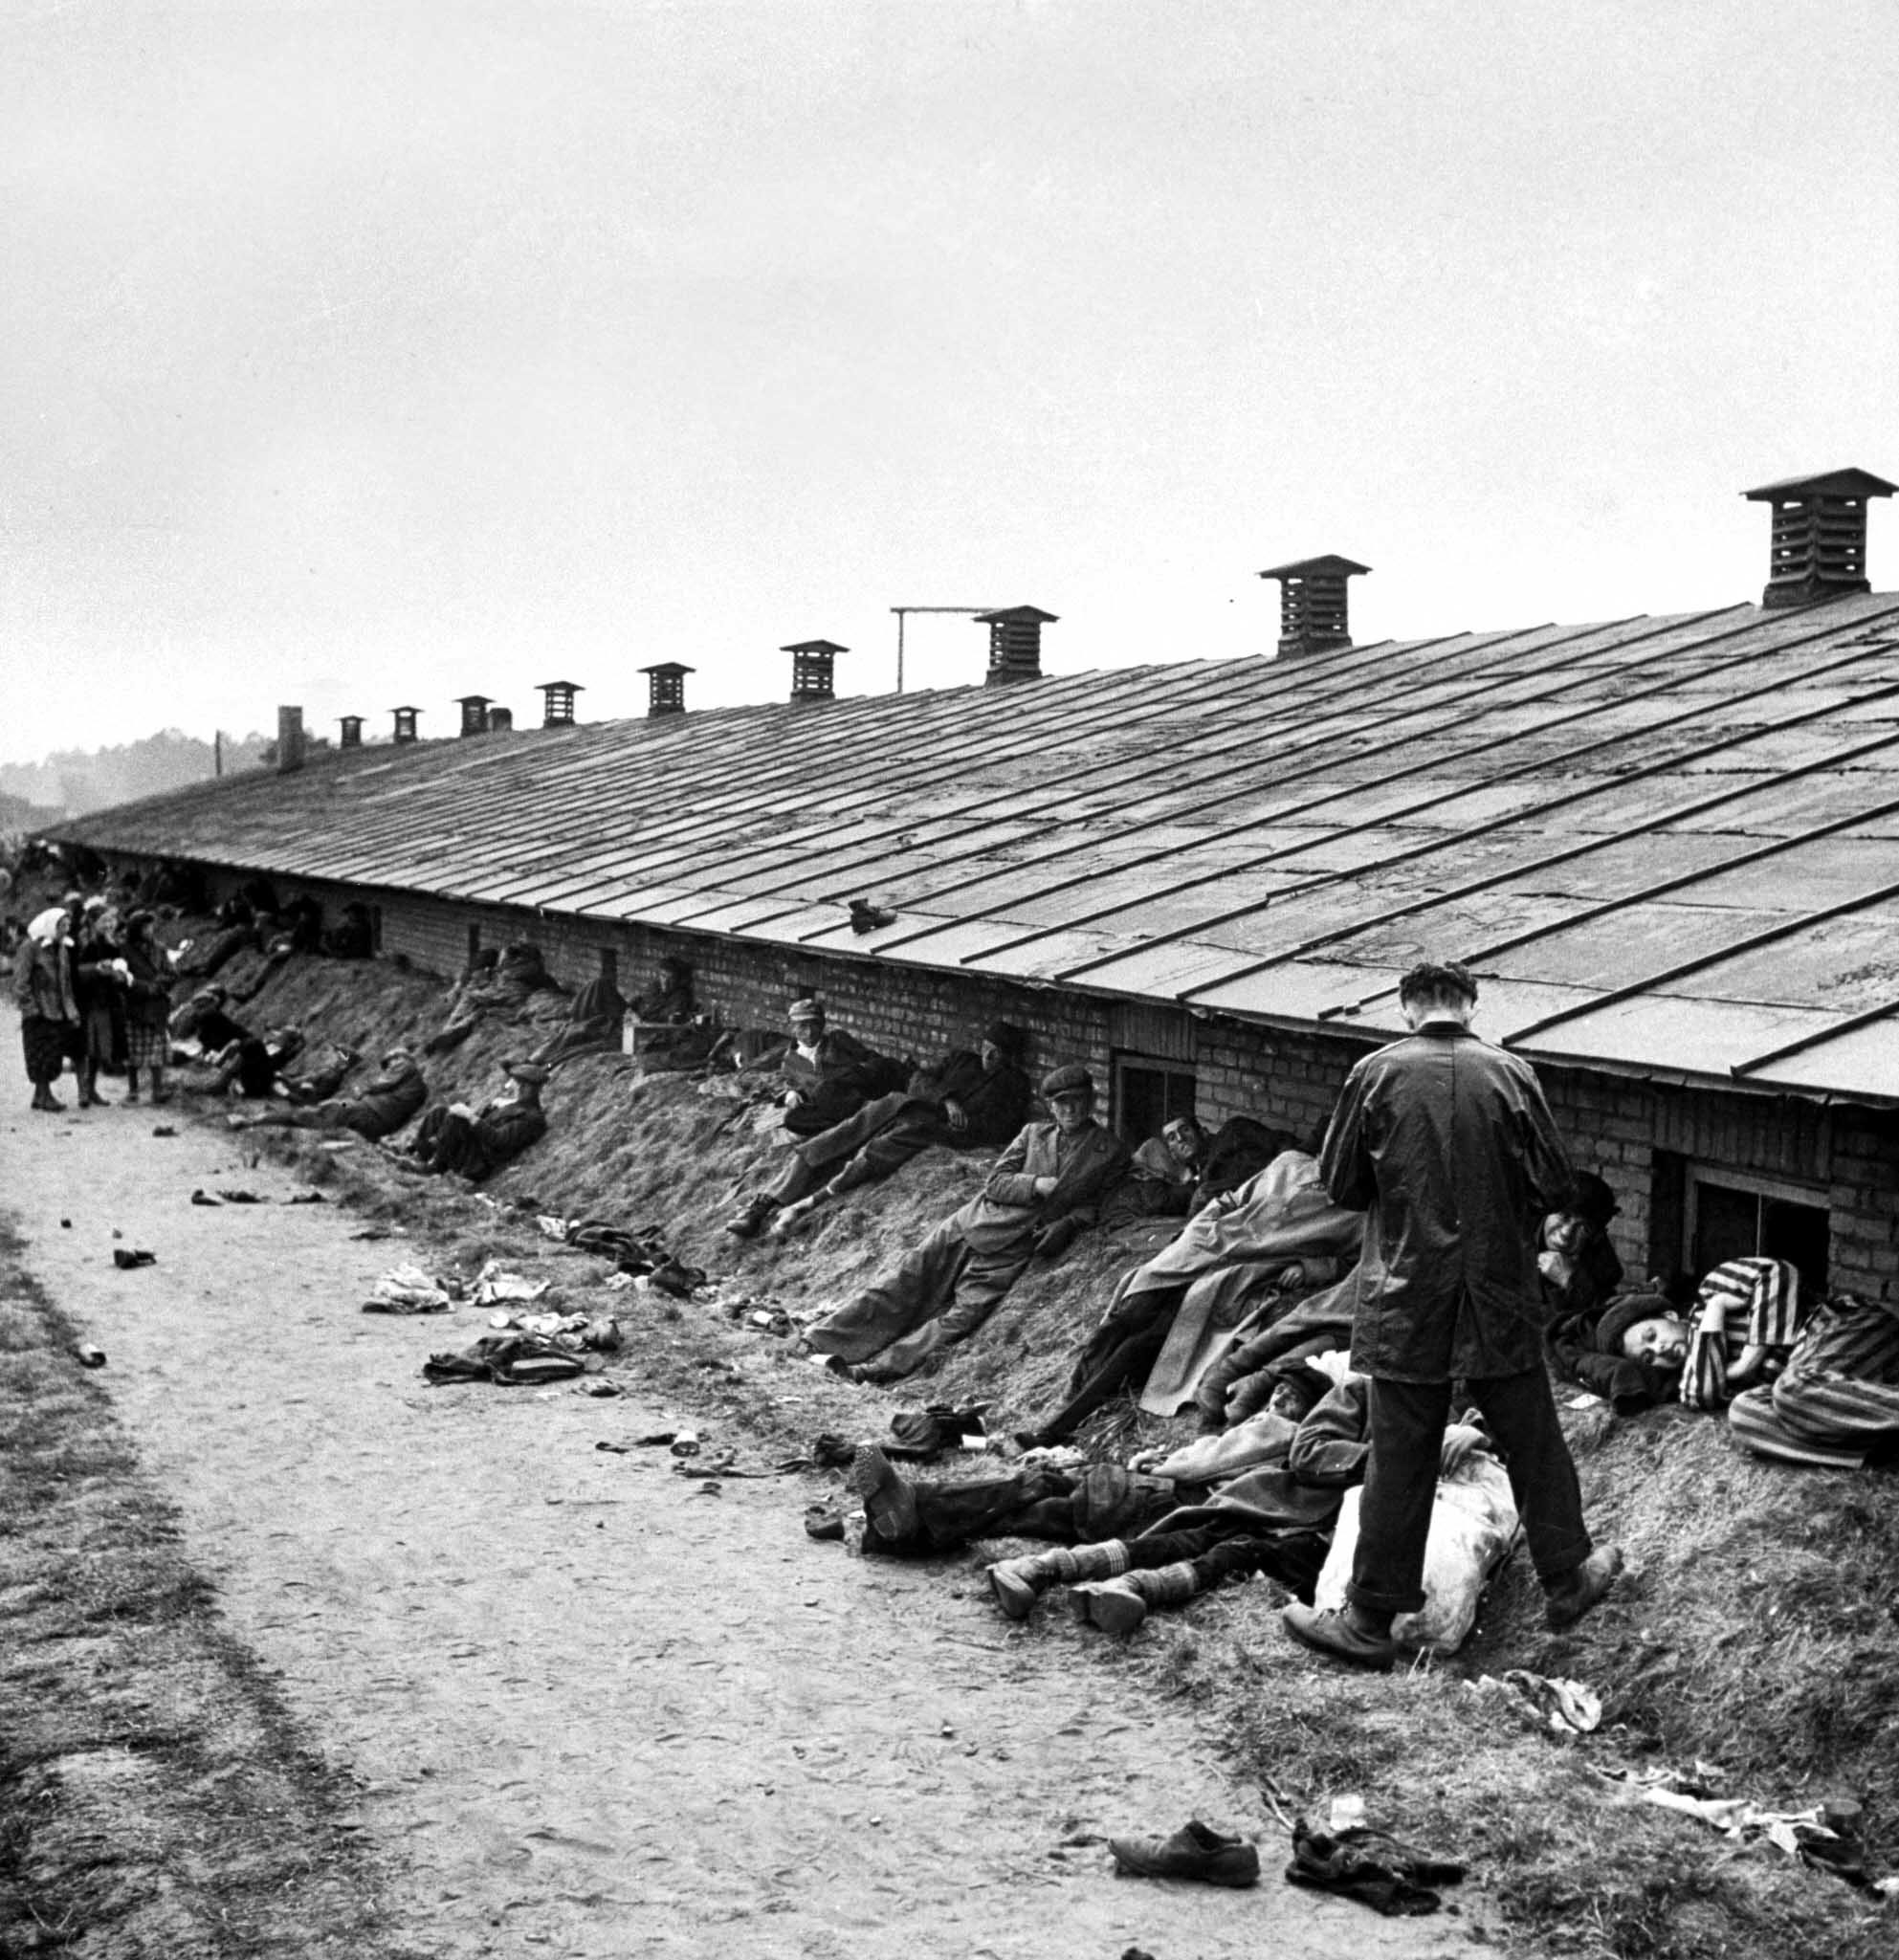 Dying men stretch out on a dirt bank behind one of the Bergen-Belsen barracks, 1945.